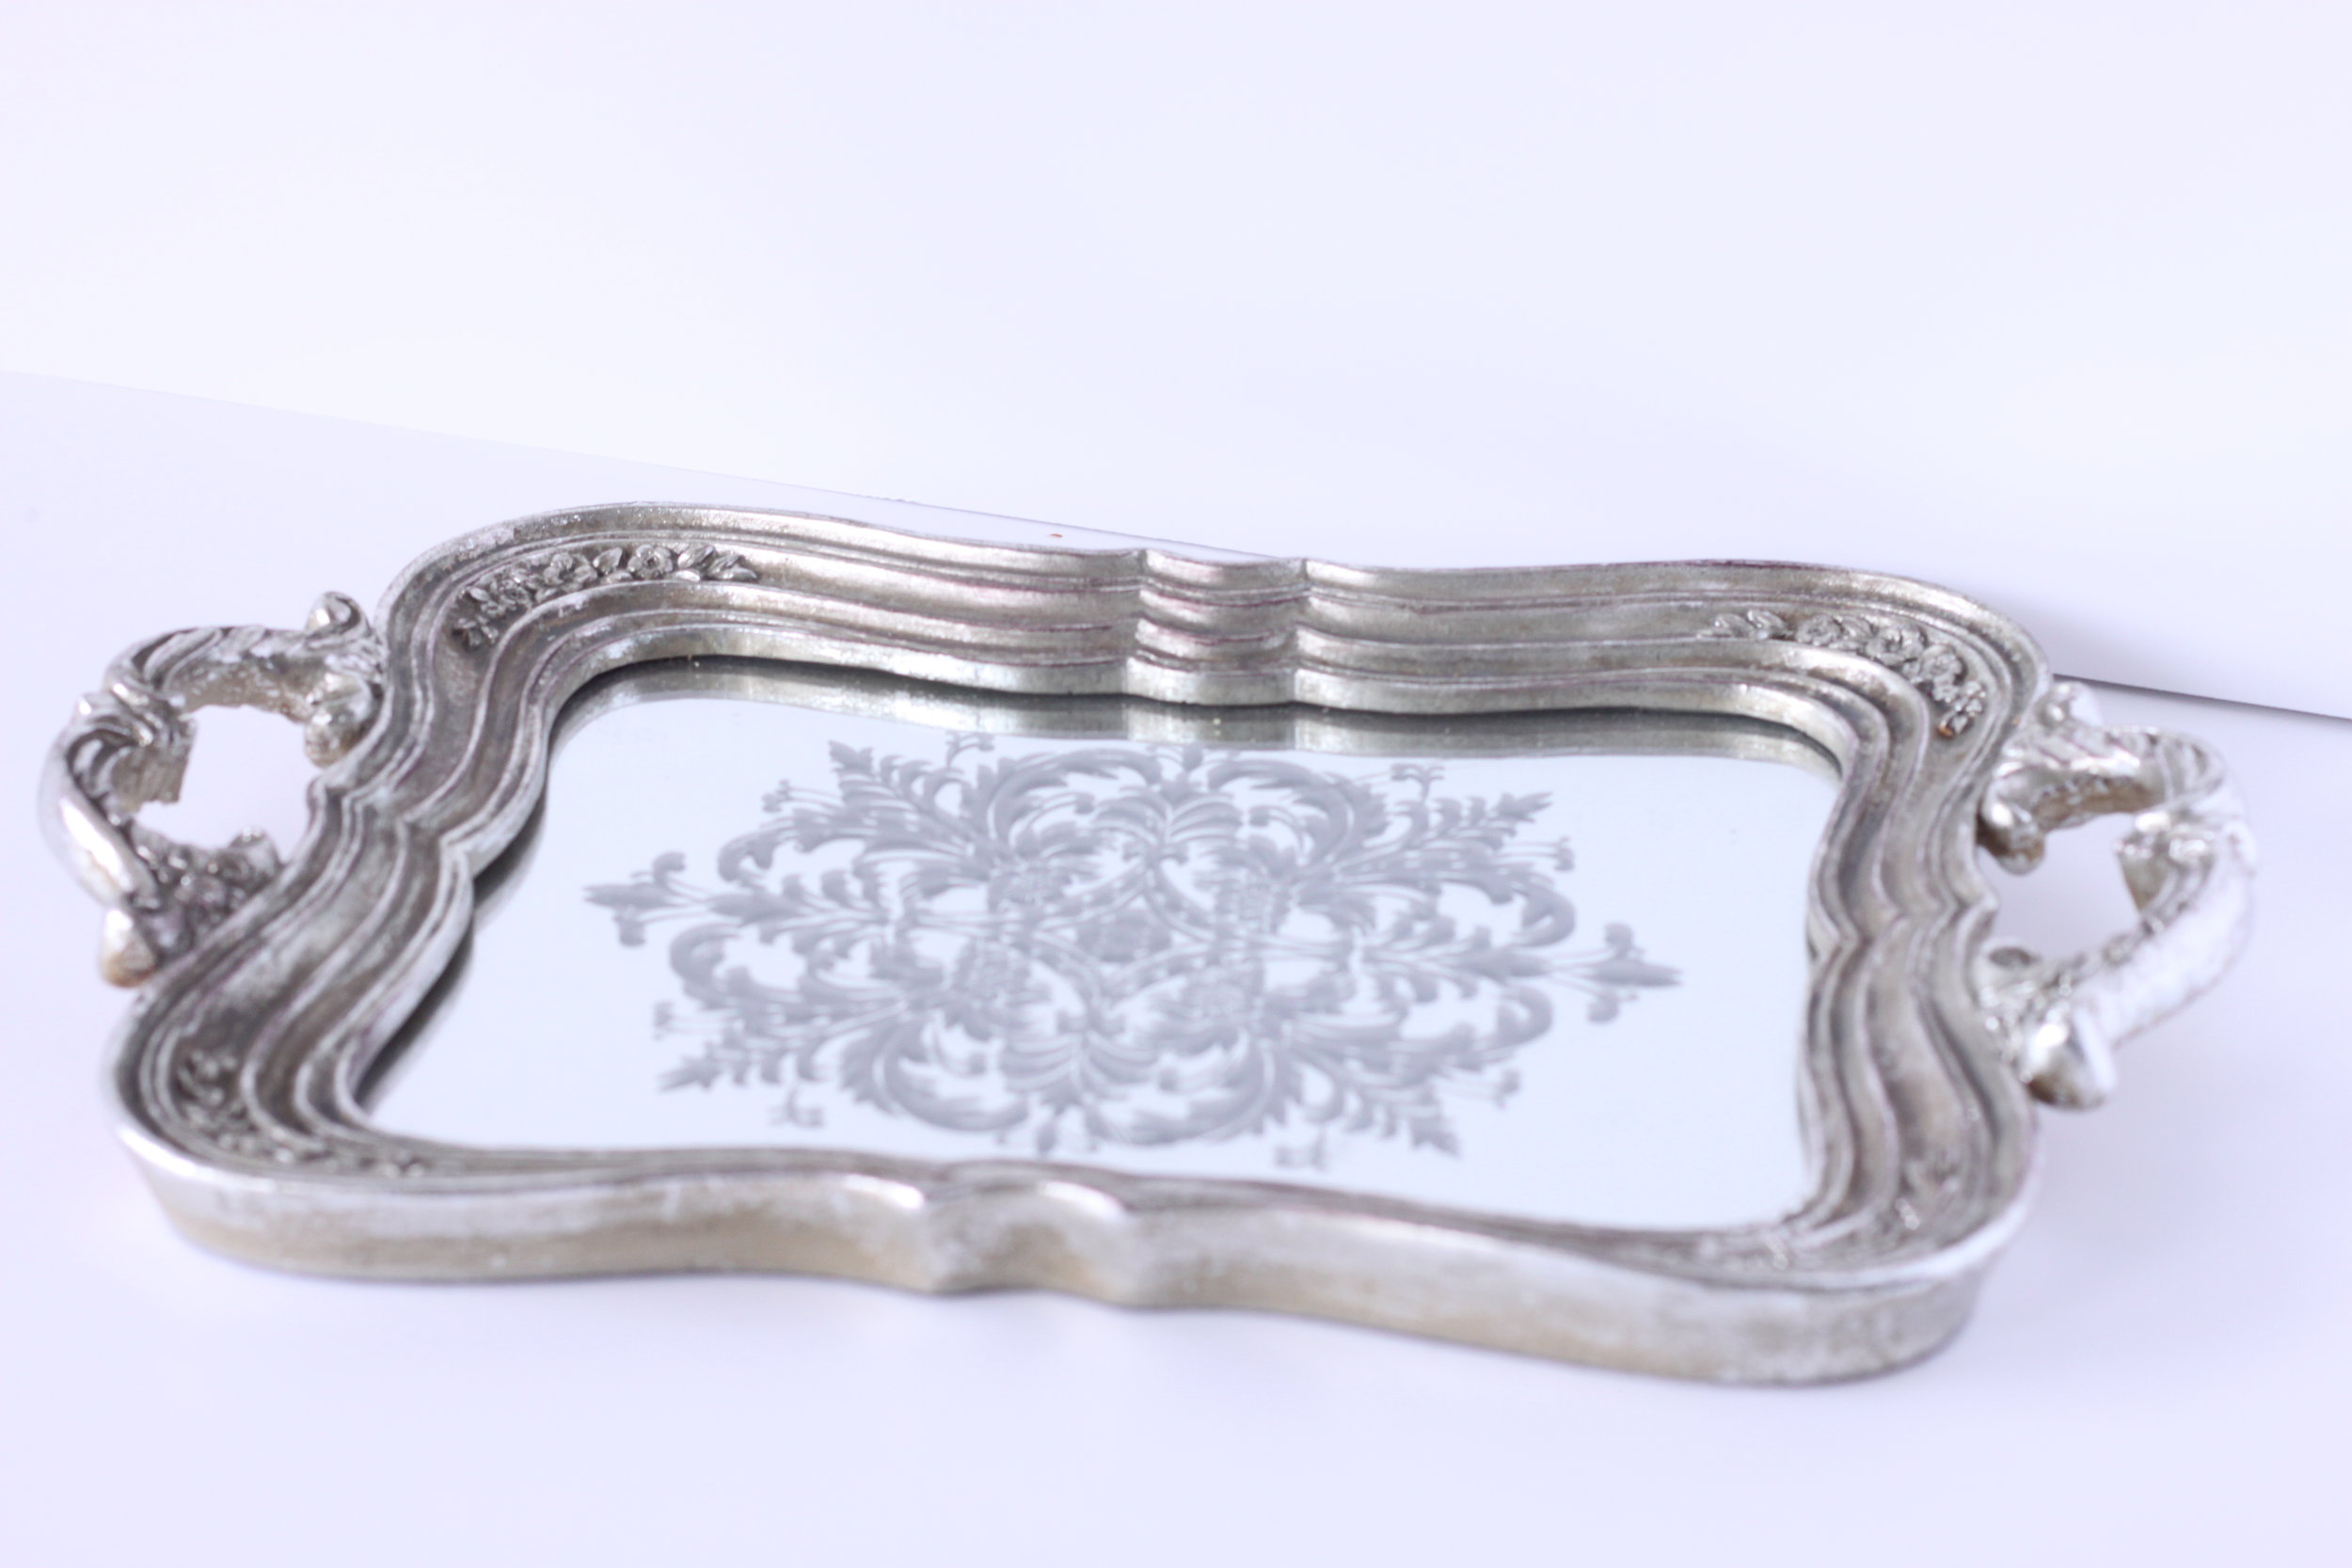 Copy of Silver mirrored handle tray $6/ea.